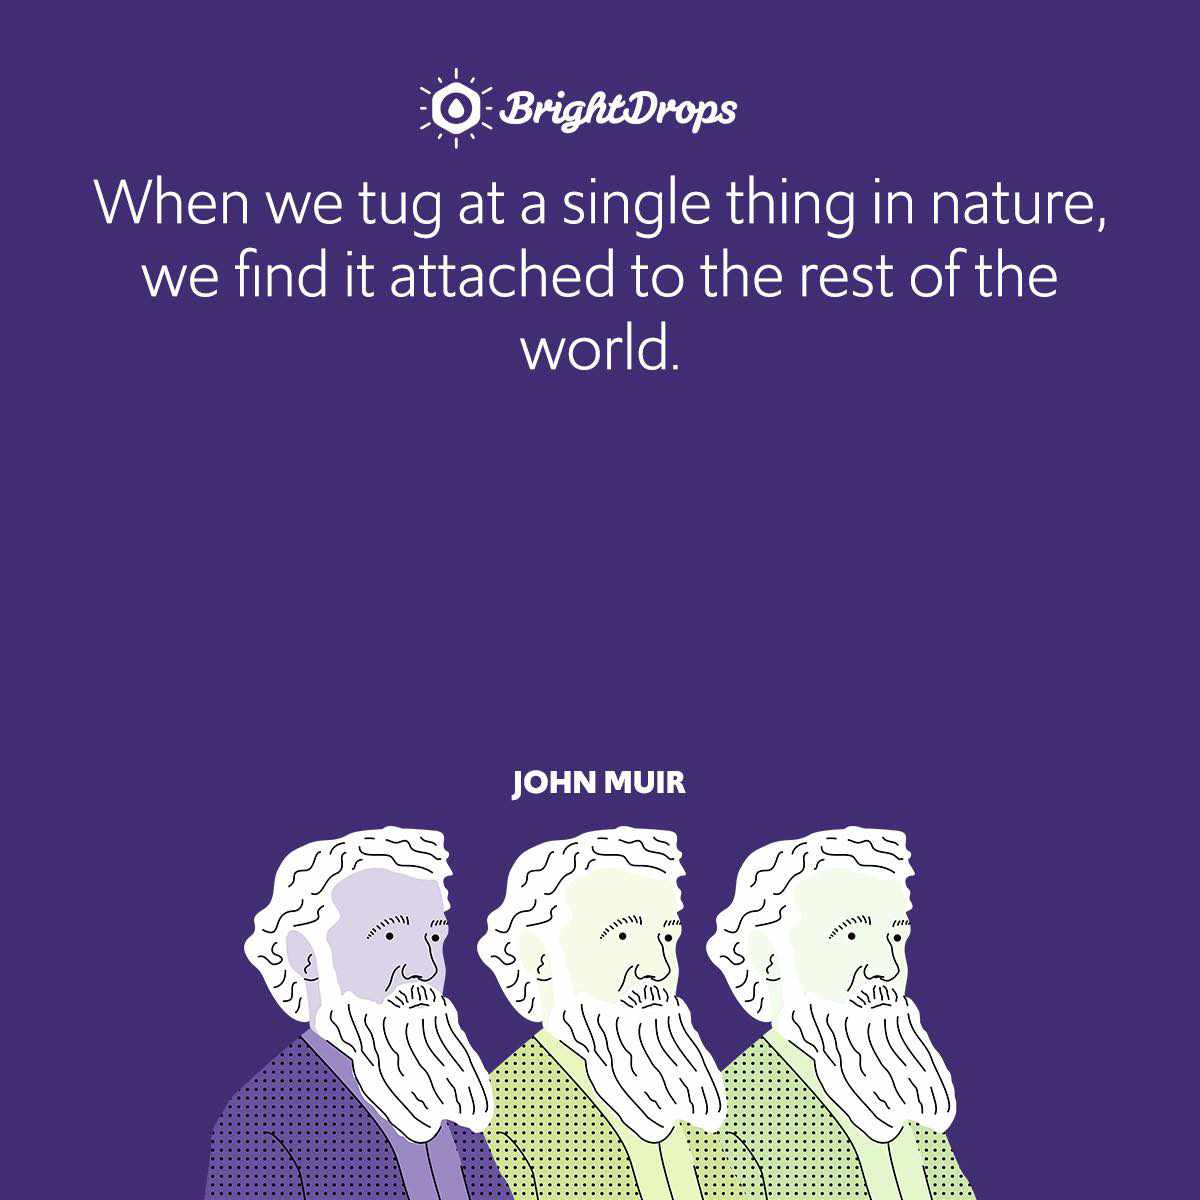 When we tug at a single thing in nature, we find it attached to the rest of the world.